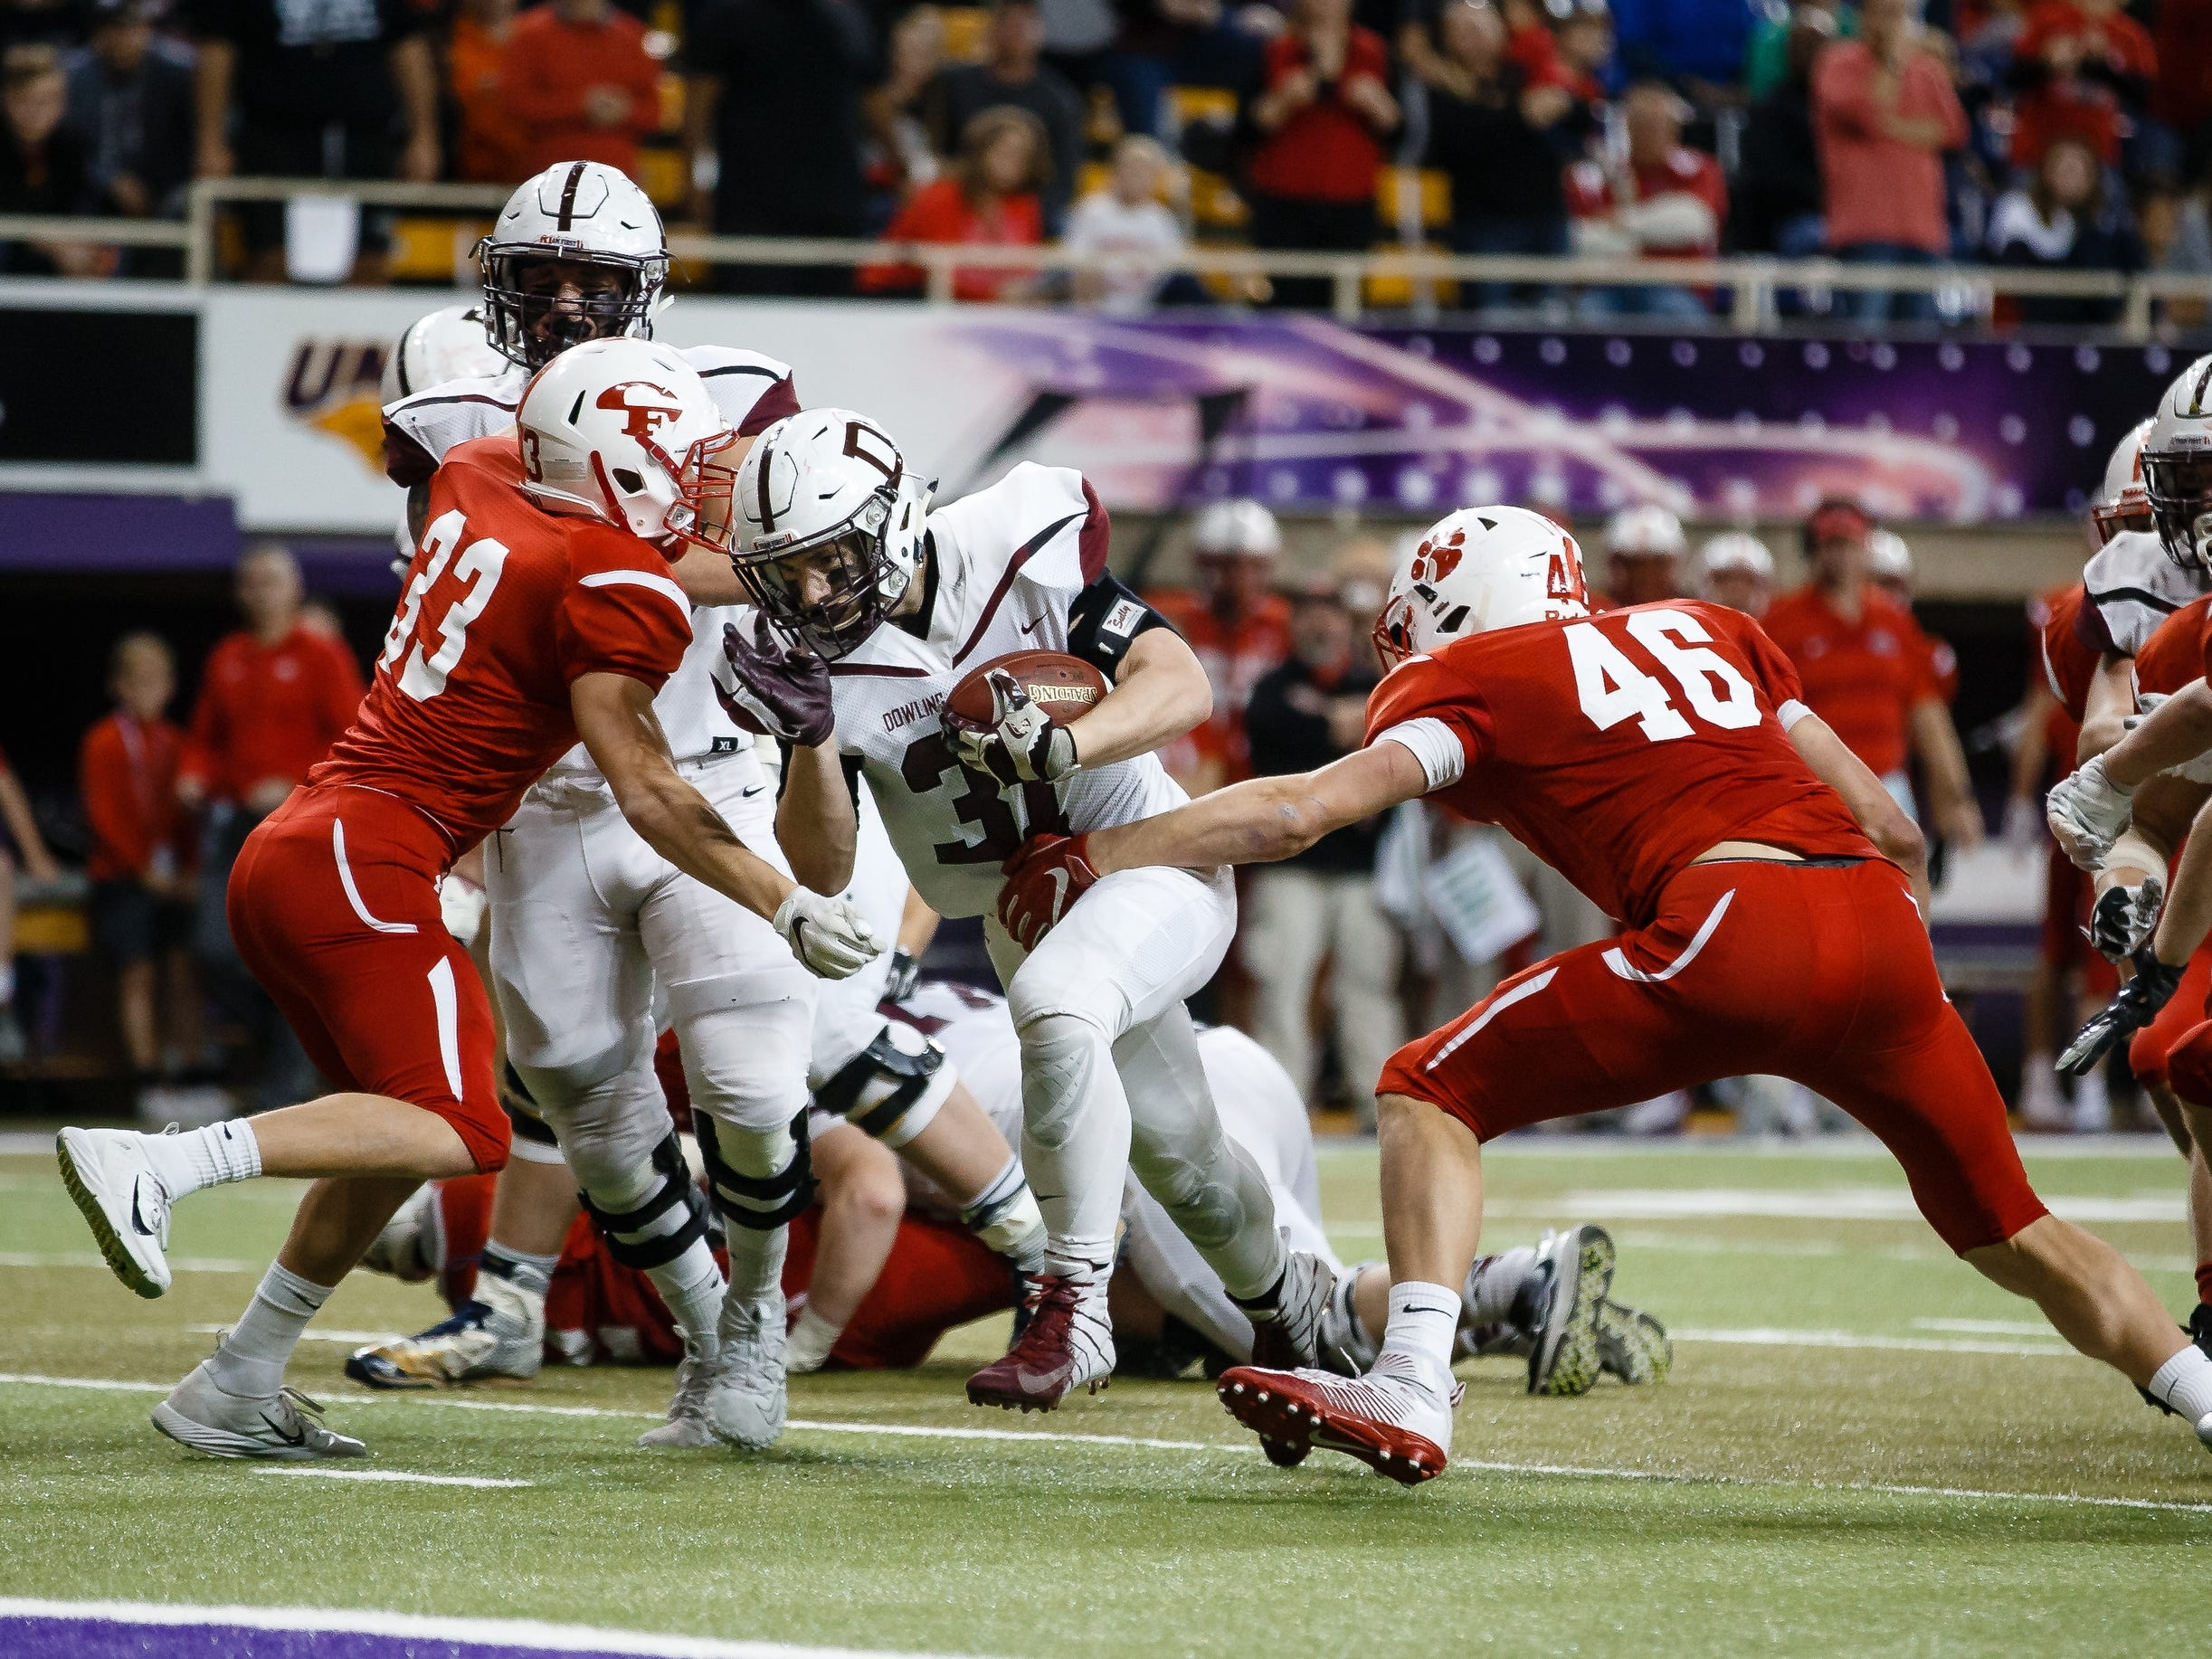 Dowling Catholic's Teagan Johnson (31) runs into the end zone to make the score 13-16 during their class 4A state championship football game on Friday, Nov. 16, 2018, in Cedar Falls. Dowling Catholic would go on to defeat Cedar Falls 22-16 and win their sixth state title.